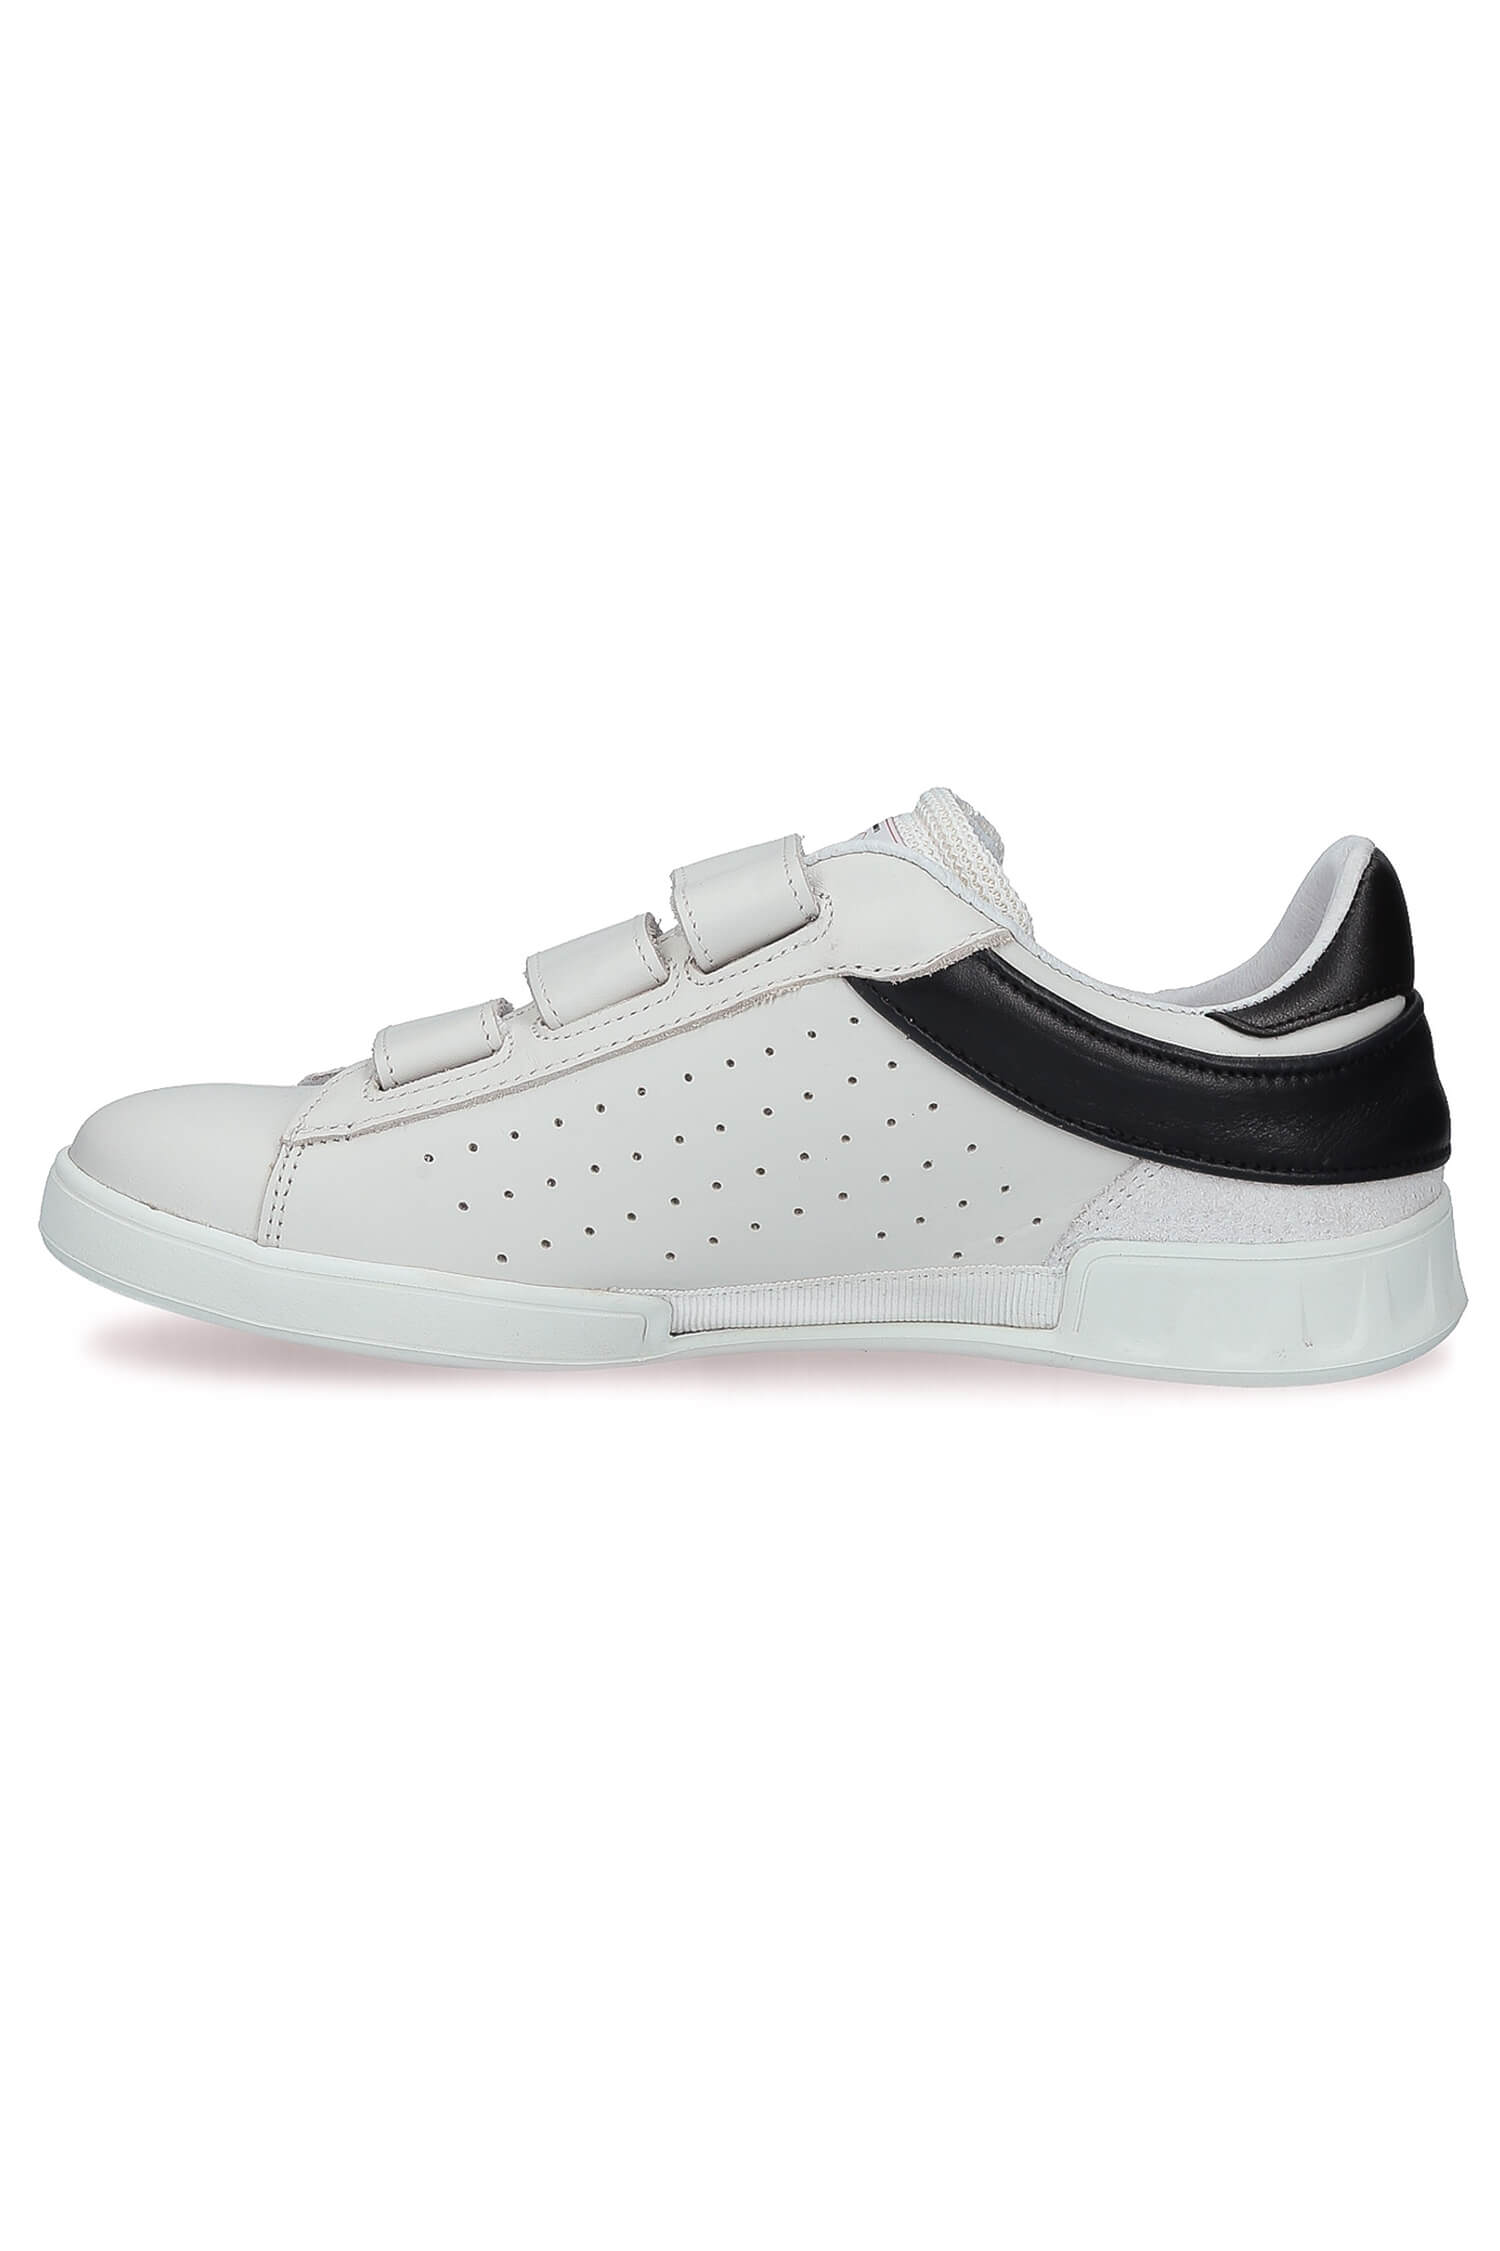 Chaussures - Bas-tops Et Baskets Roseanna 8xm1RBUBN